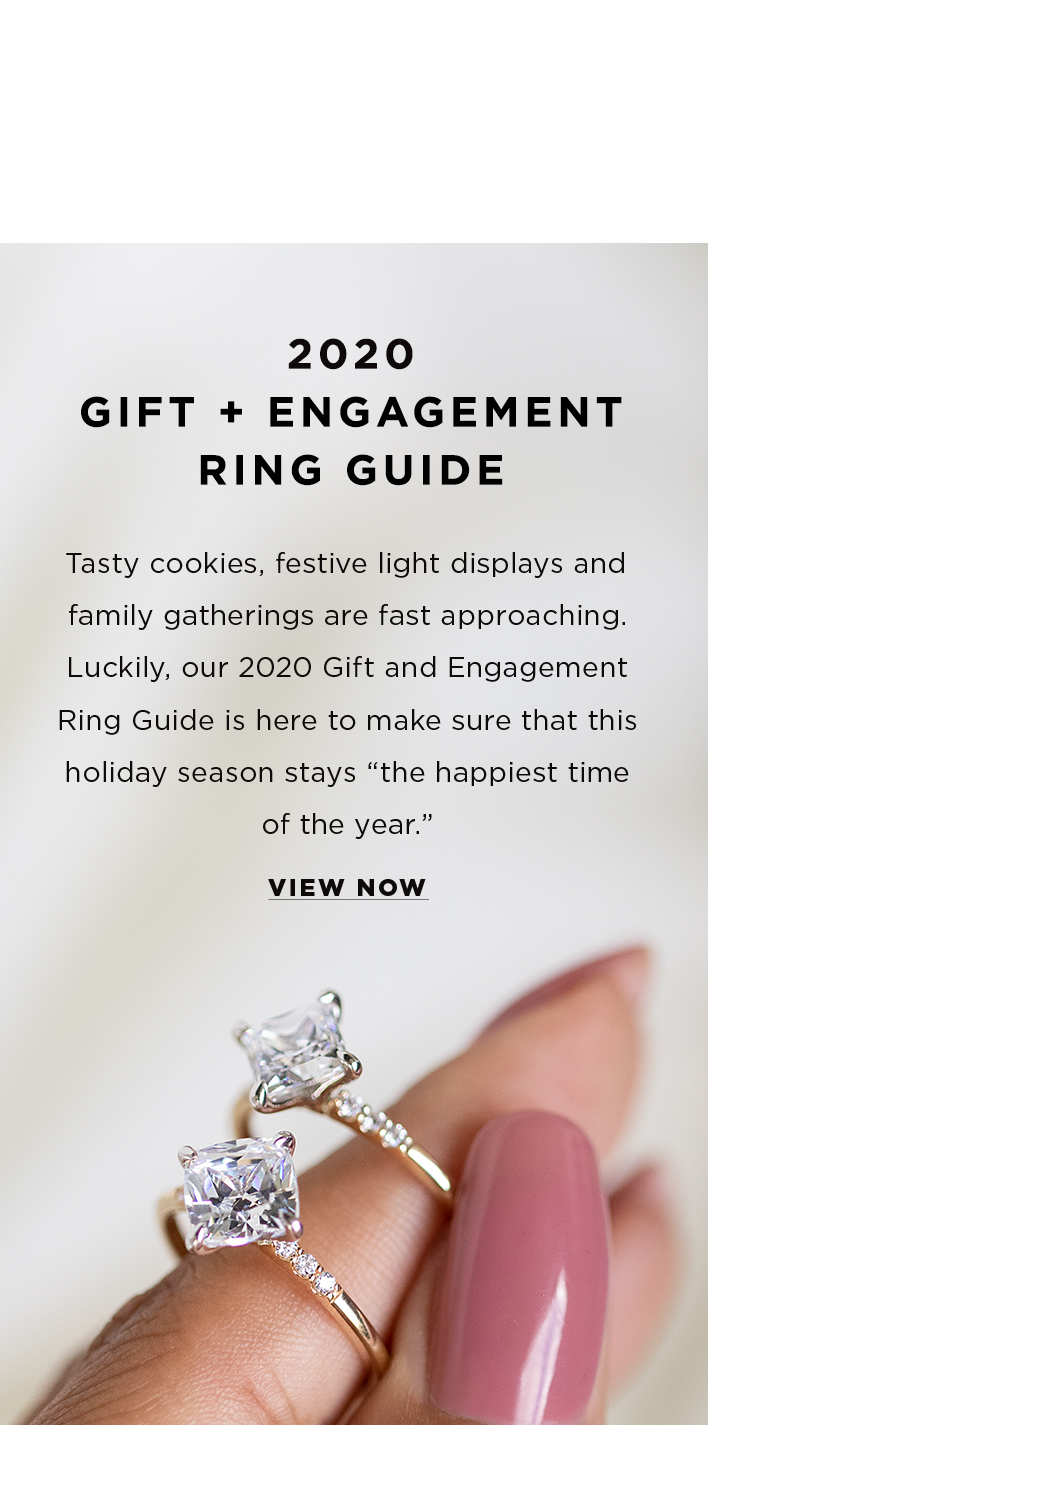 2020 Gift and Engagement Ring Guide